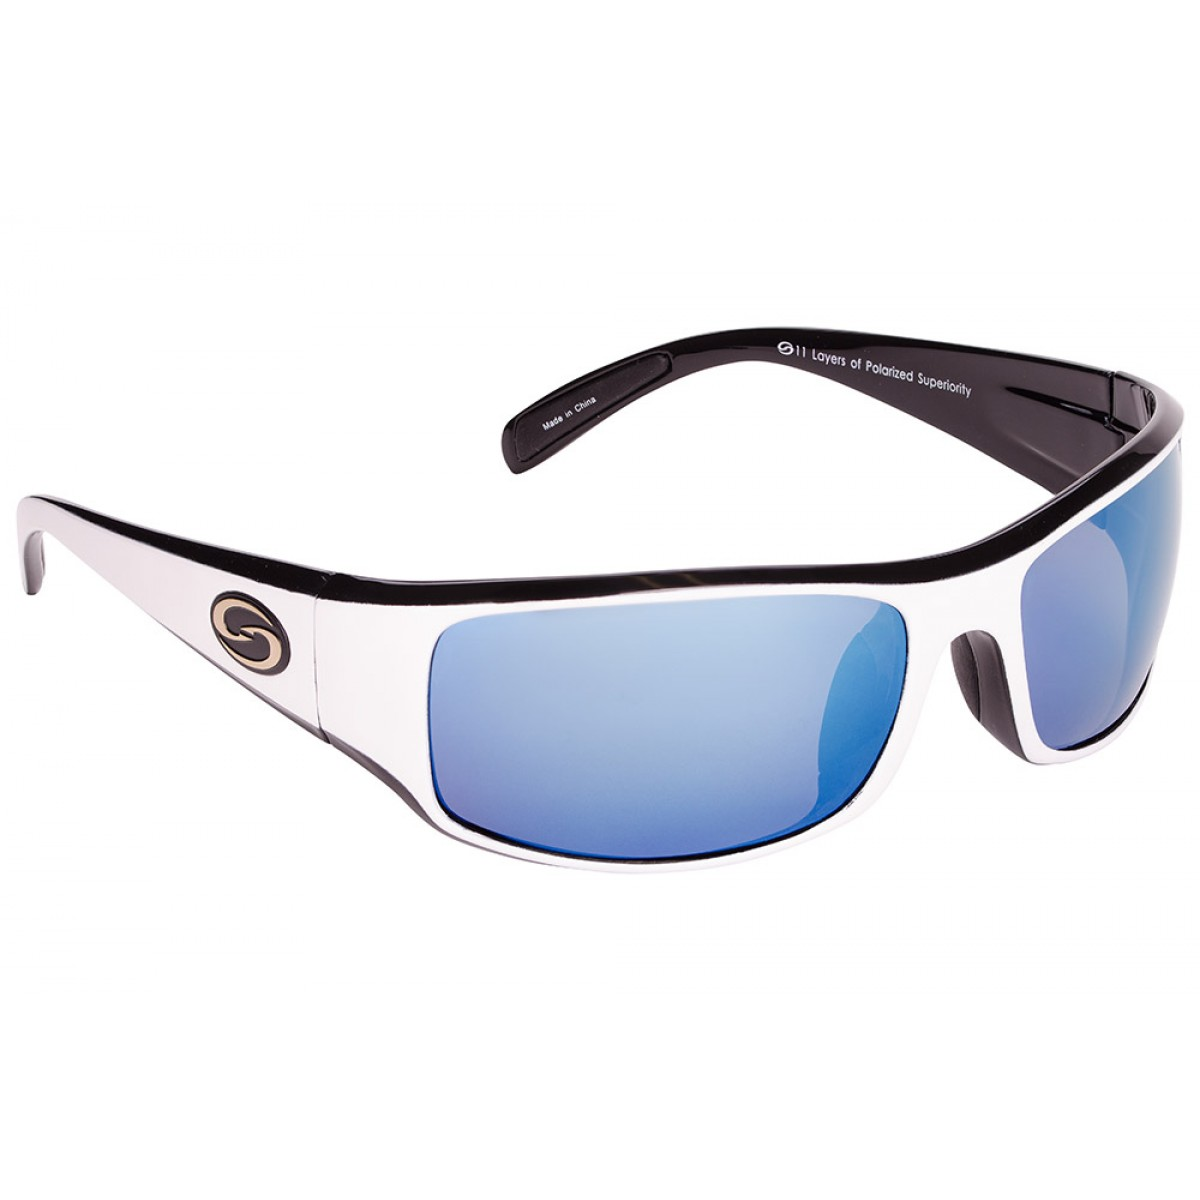 16c70cbf9a5 Strike King S11 Sunglasses